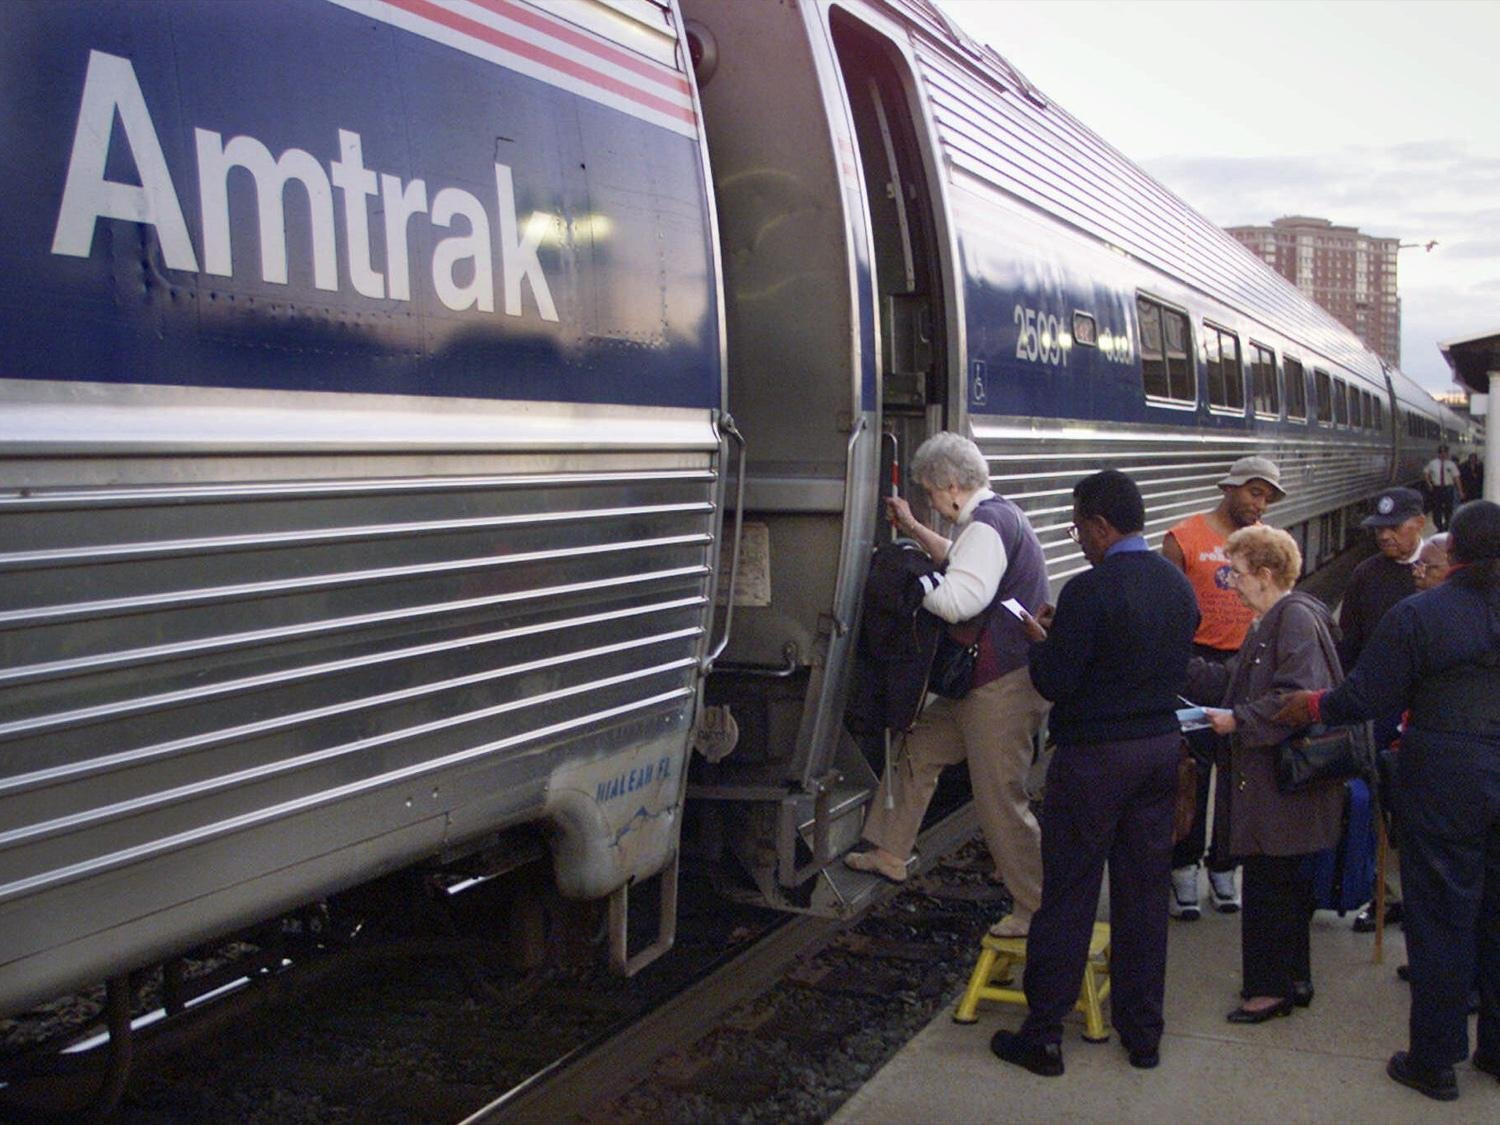 FBI Accuses White Supremacist of Attempted Terror Attack on Amtrak Train